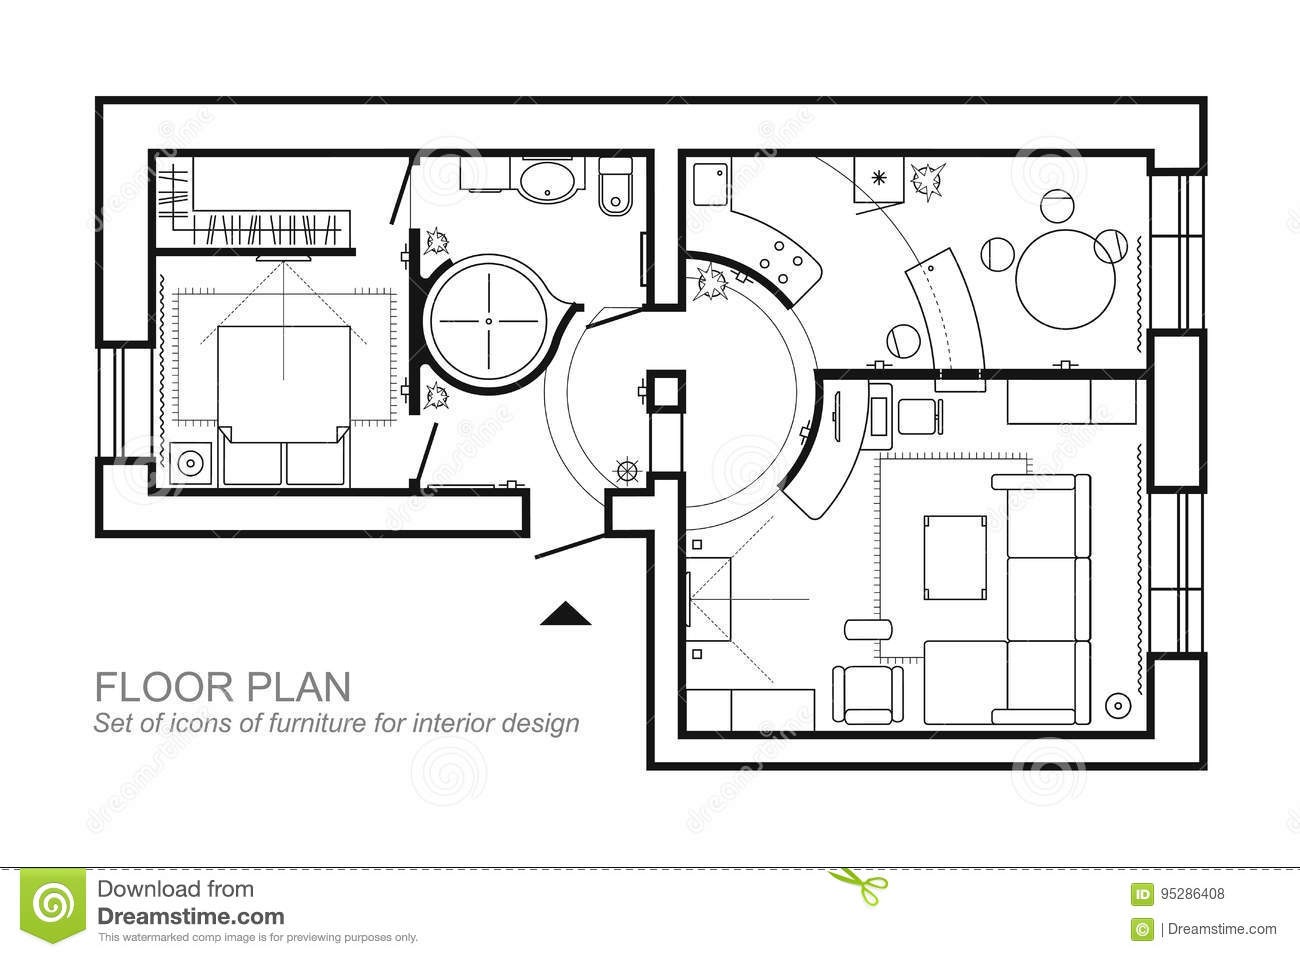 Genial Finest Comment Dessiner Un Plan D Appartement Affordable Dessin Plan  Comment Dessiner With Plan Studio 20m2